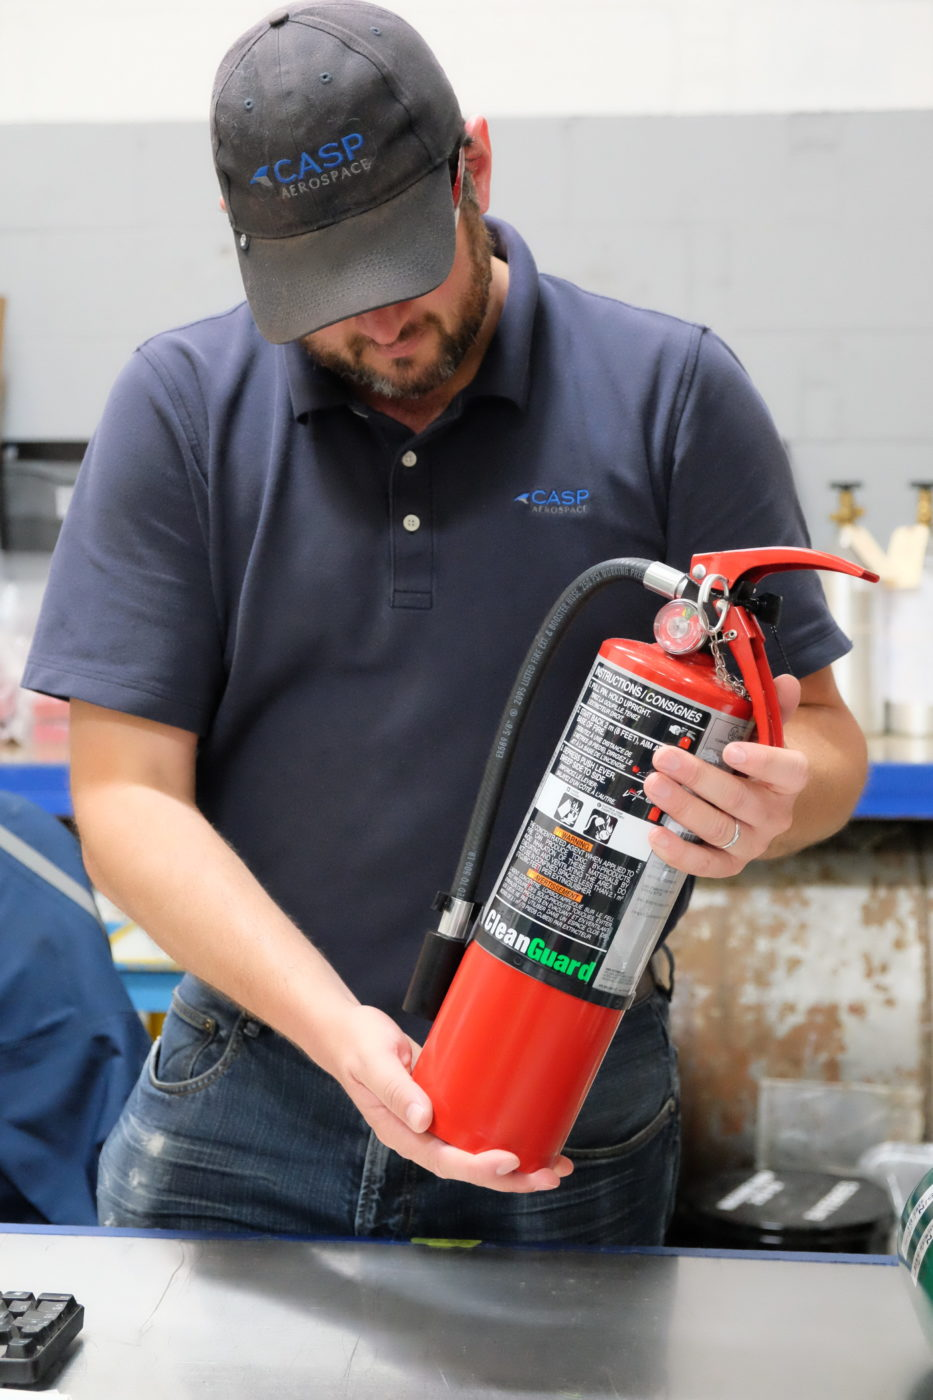 CASP AEROSPACE BECOMES A FACTORY APPROVED CANADIAN DISTRIBUTOR AND REPAIR STATION FOR ANSUL-TYCO FIRE EXTINGUISHERS